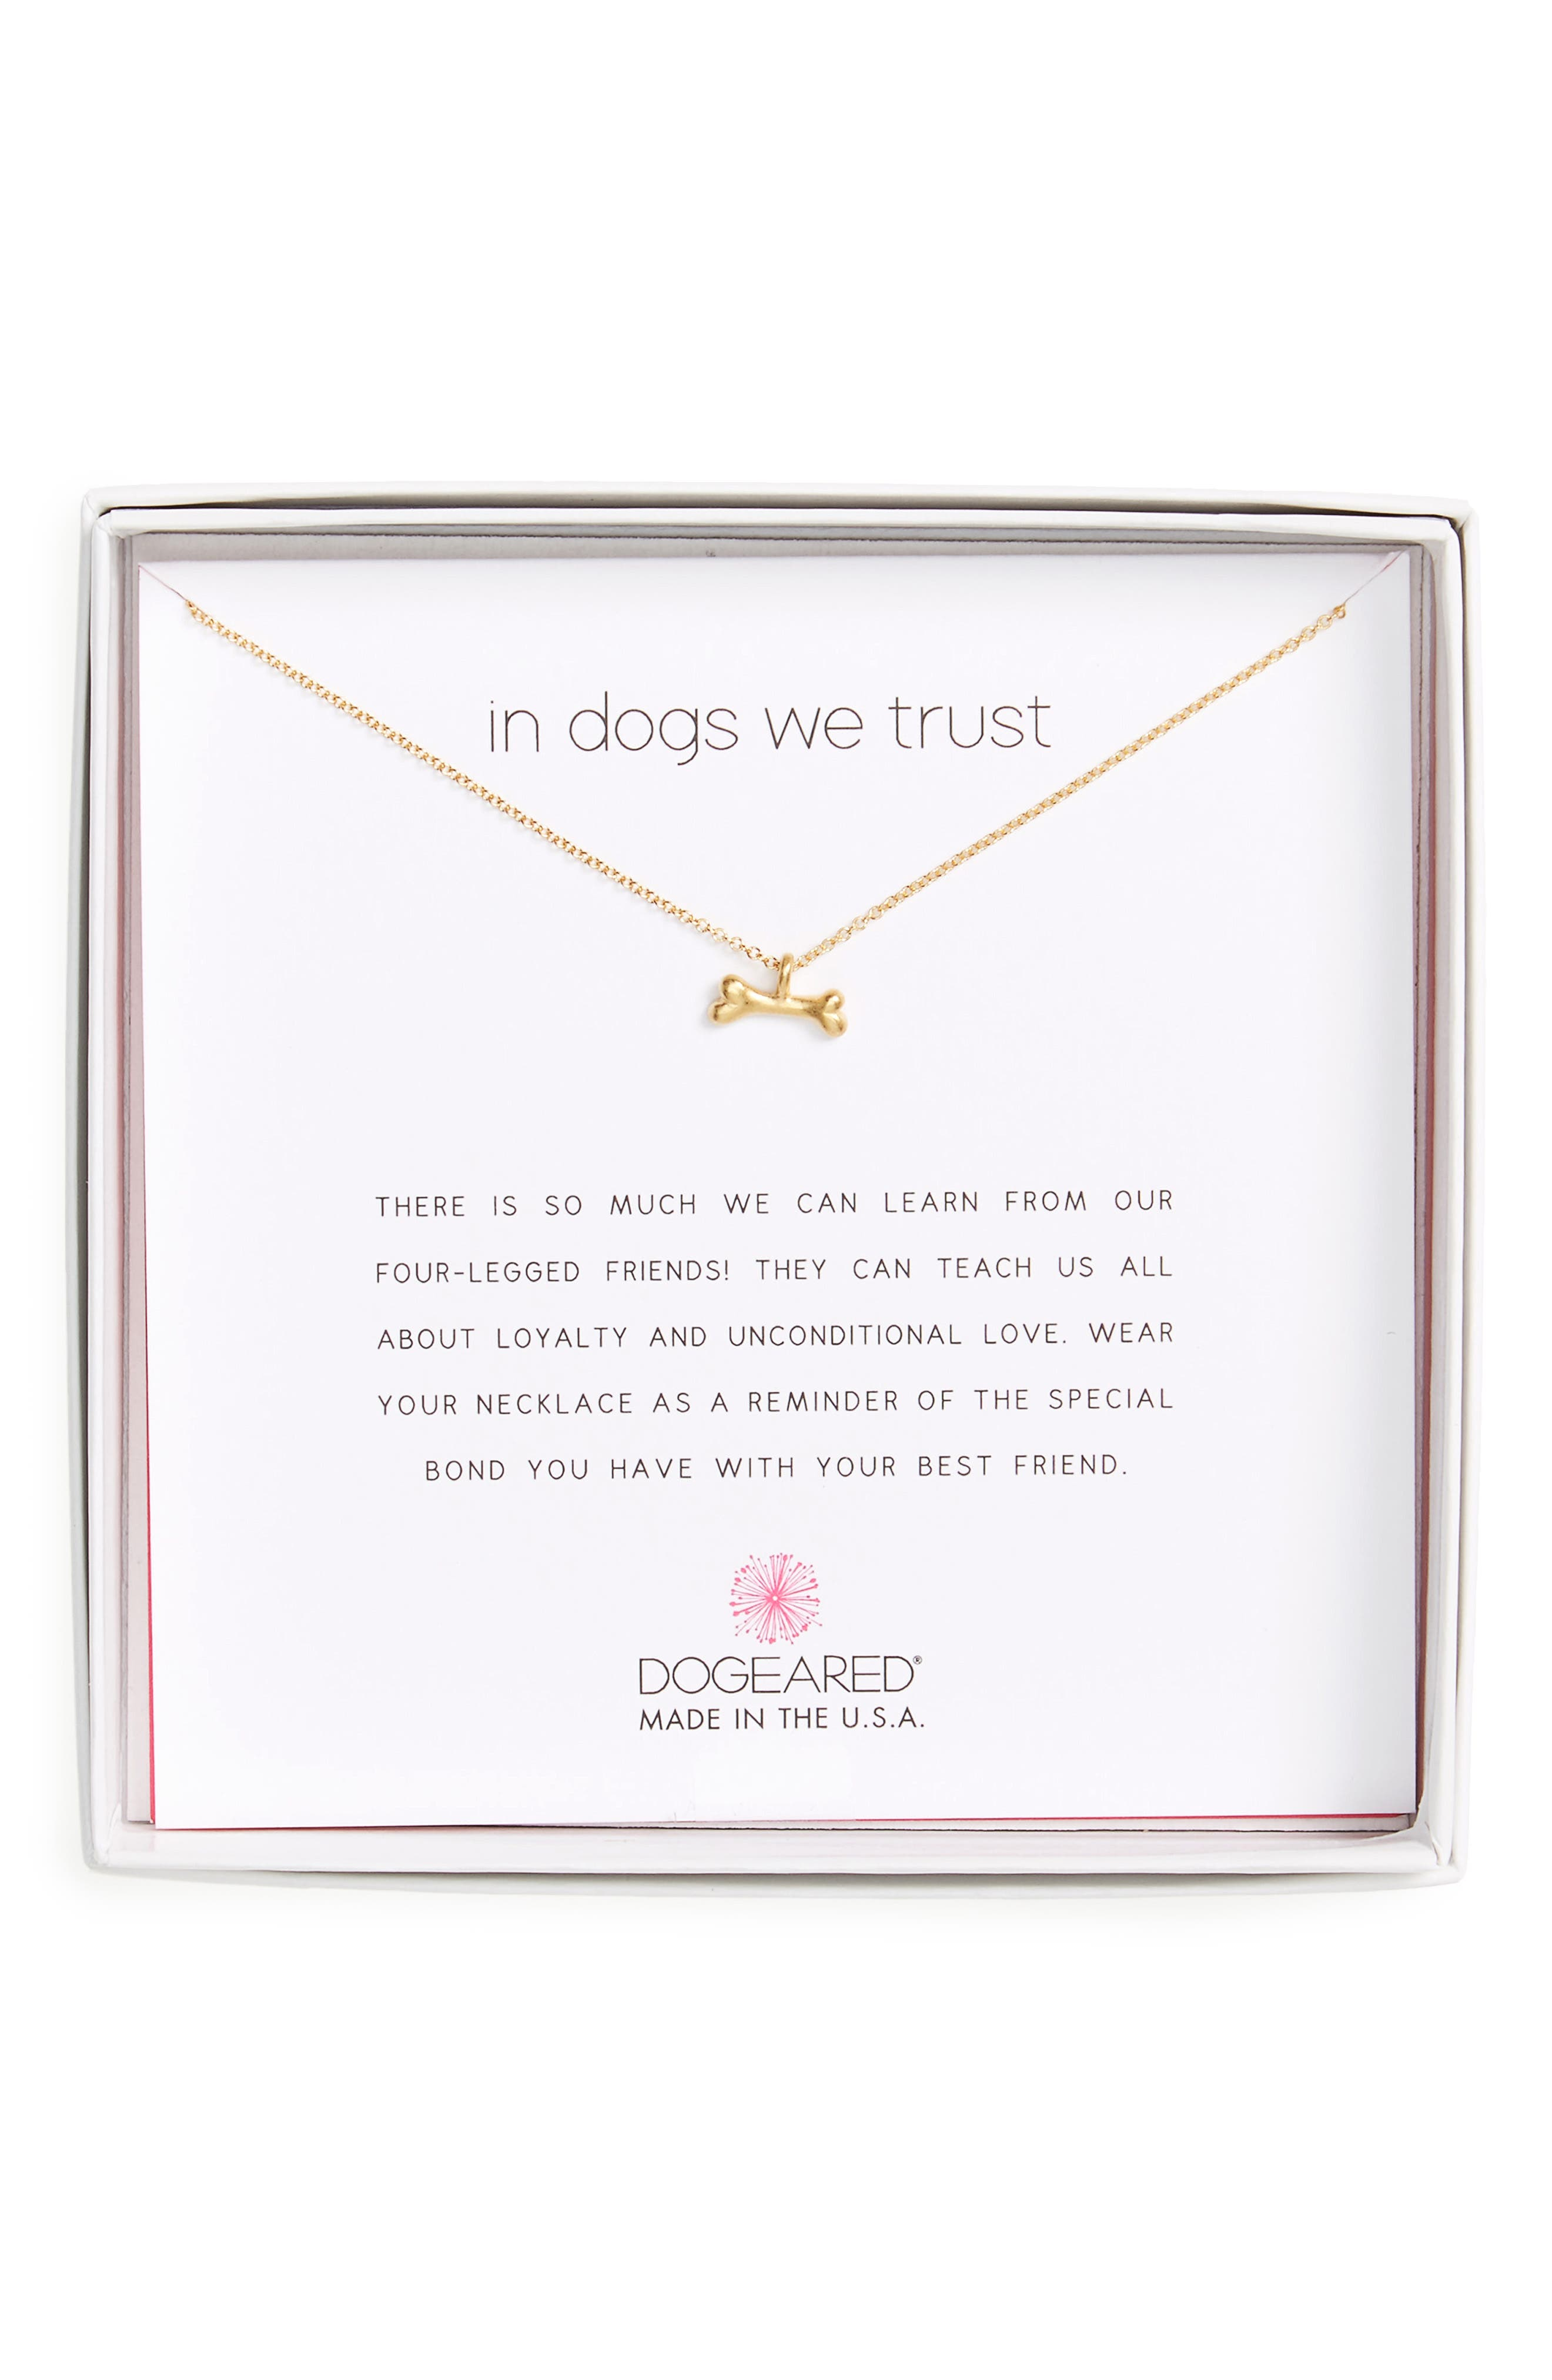 Alternate Image 1 Selected - Dogeared In Dogs We Trust Pendant Necklace